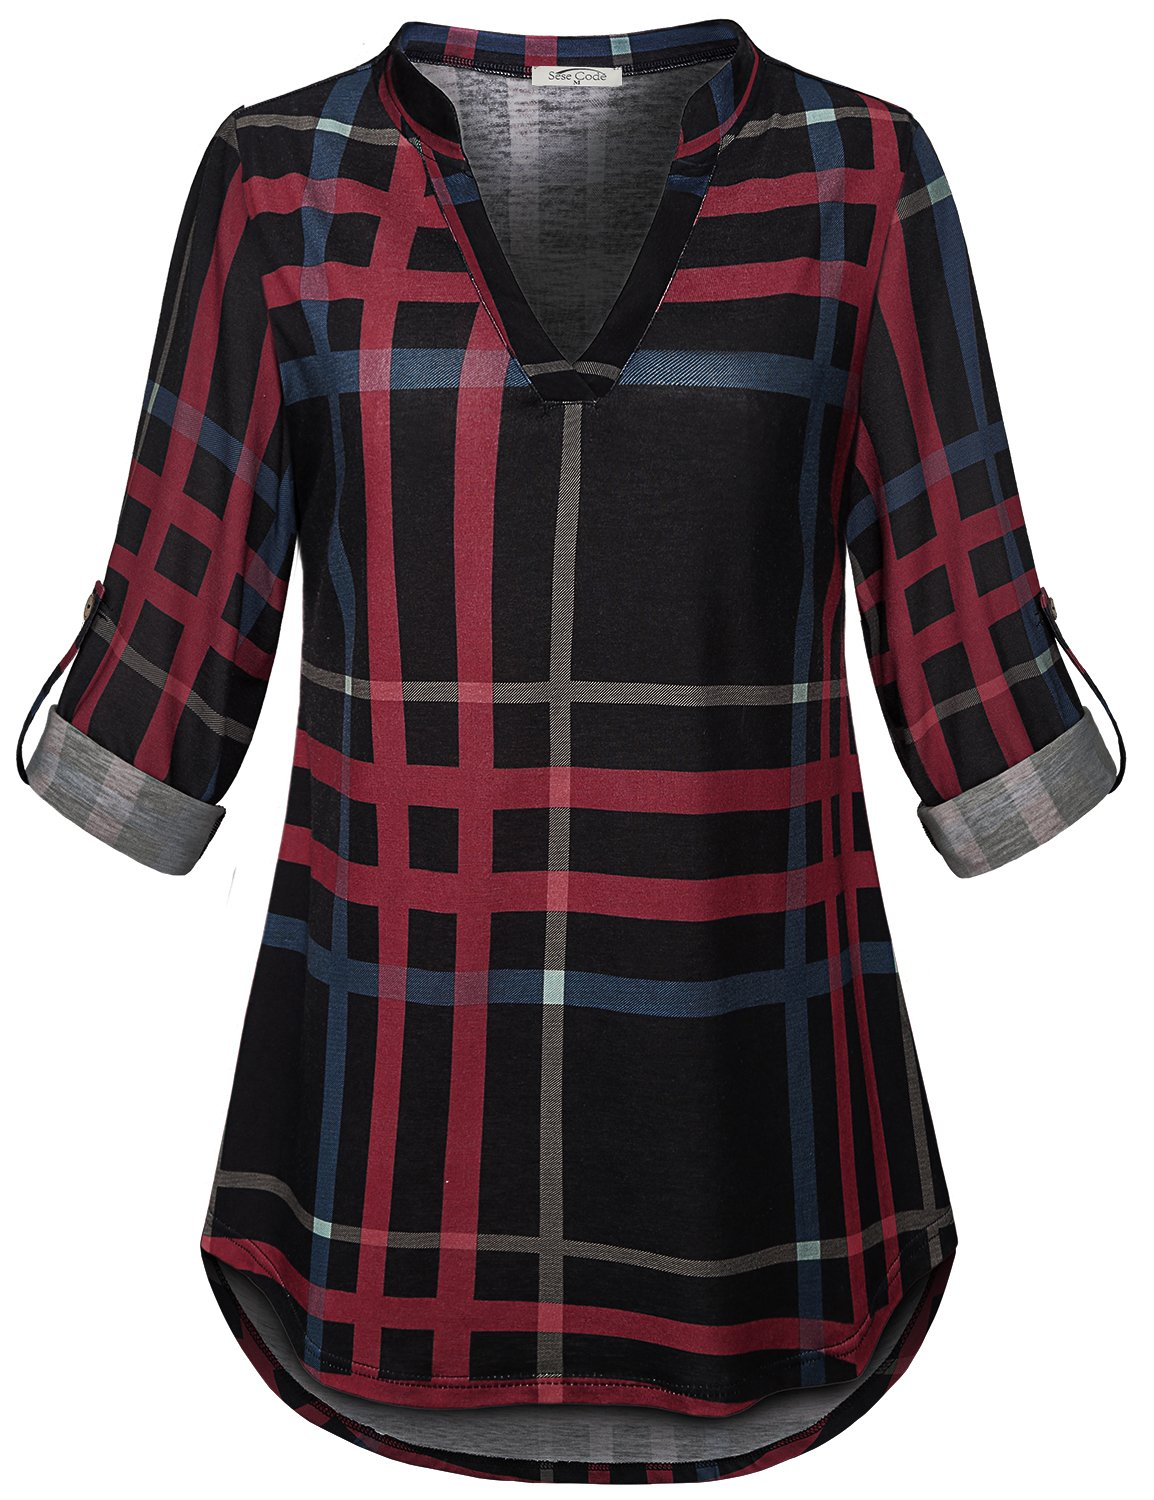 SeSe Code V Neck Blouse Women Work Fashion Knit Henley Plaid Boutique Trend Fancy Clothes Perfect T Shirt Shift Designing Ruffle Flowy Tunic Black and Red XL